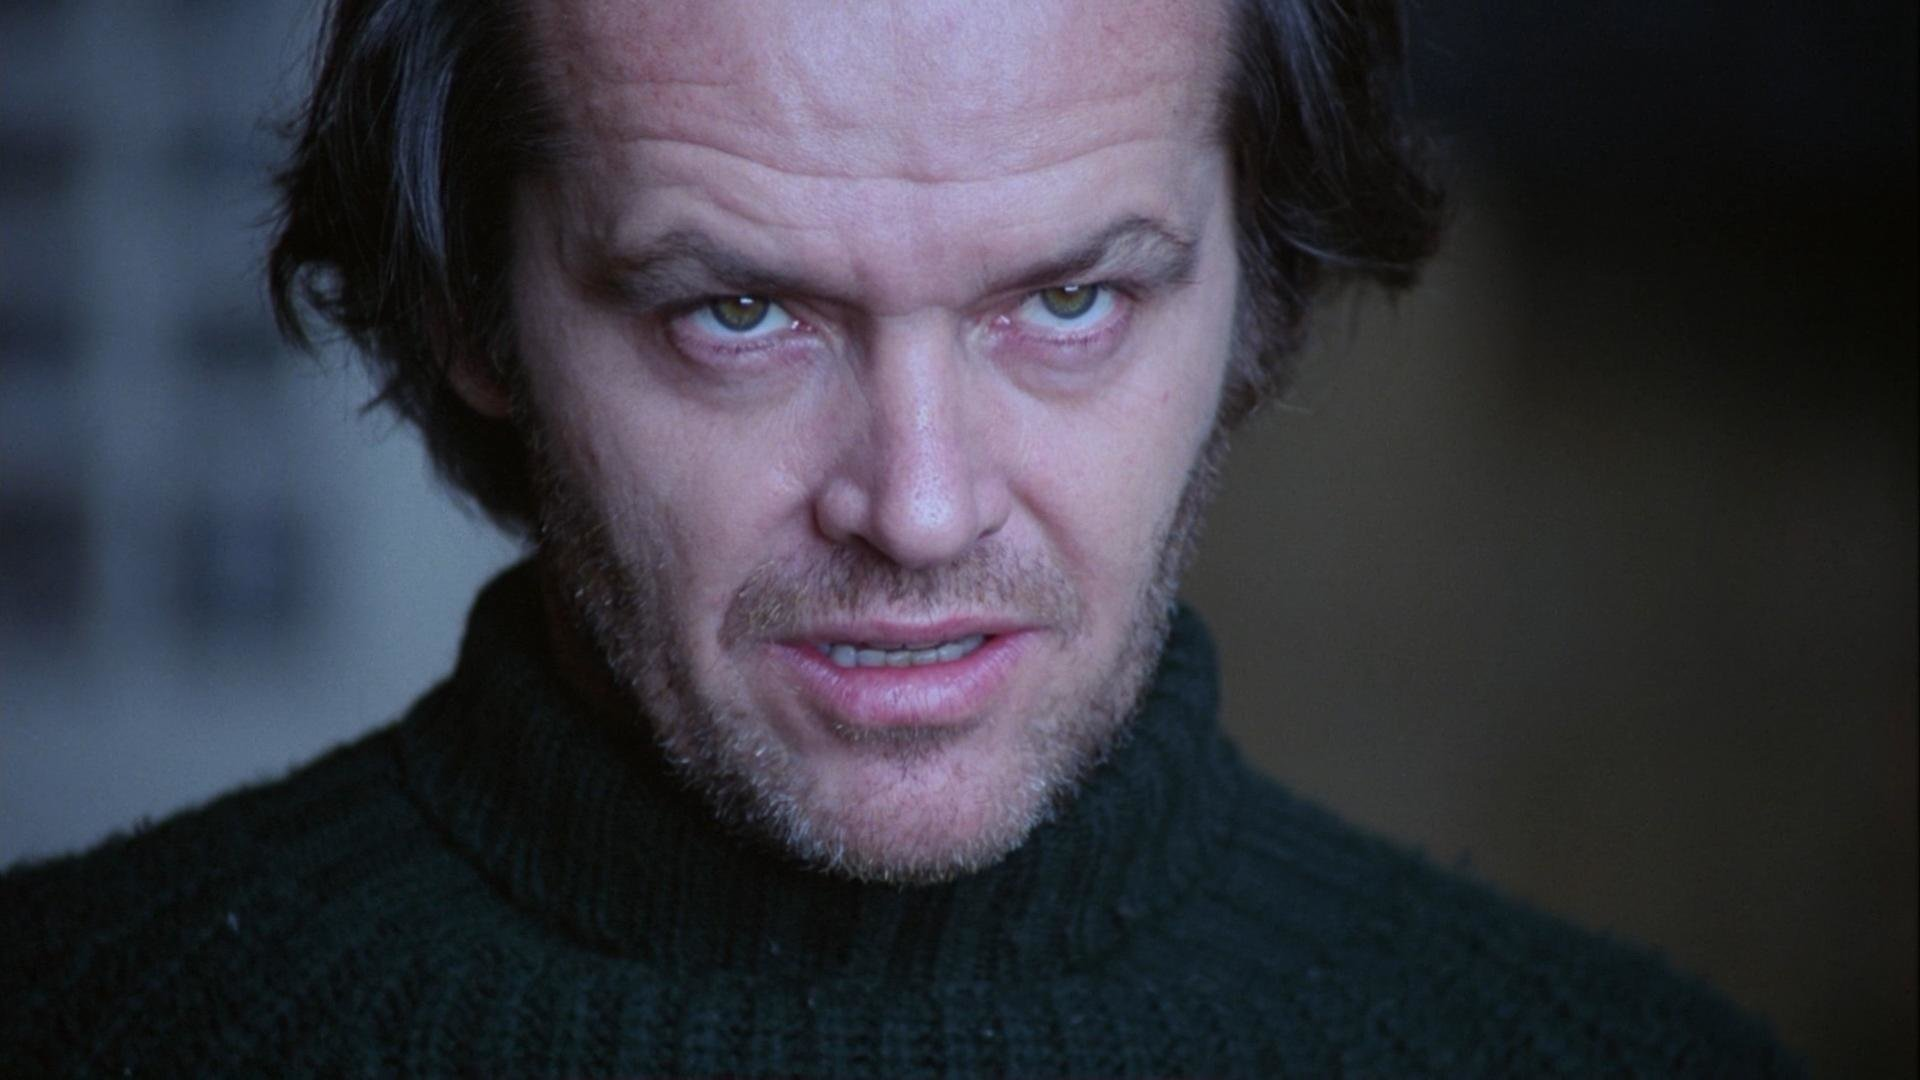 Download hd 1920x1080 The Shining PC wallpaper ID:146099 for free